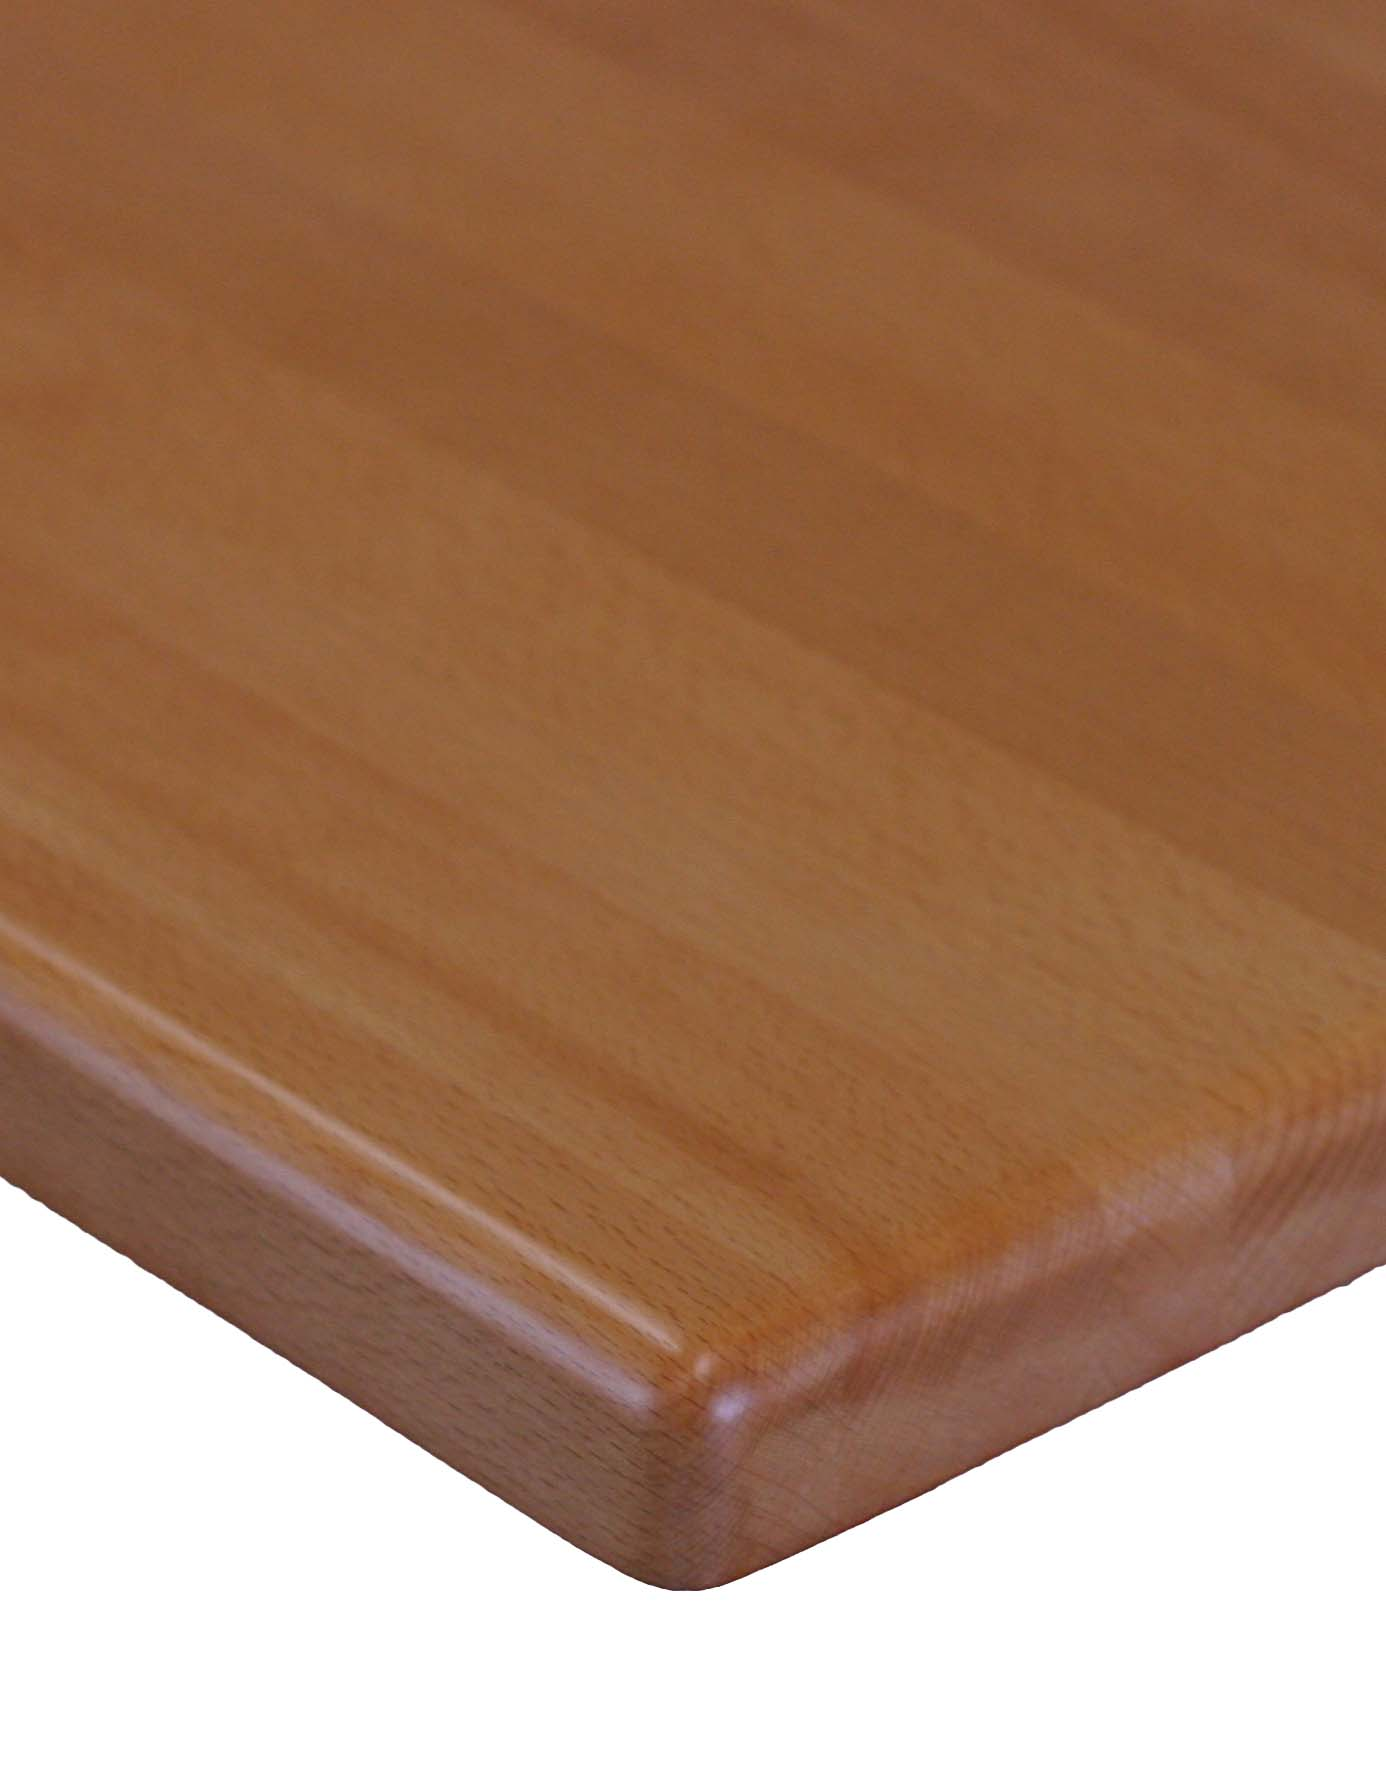 T53 - Solid Beech Wood Table Top